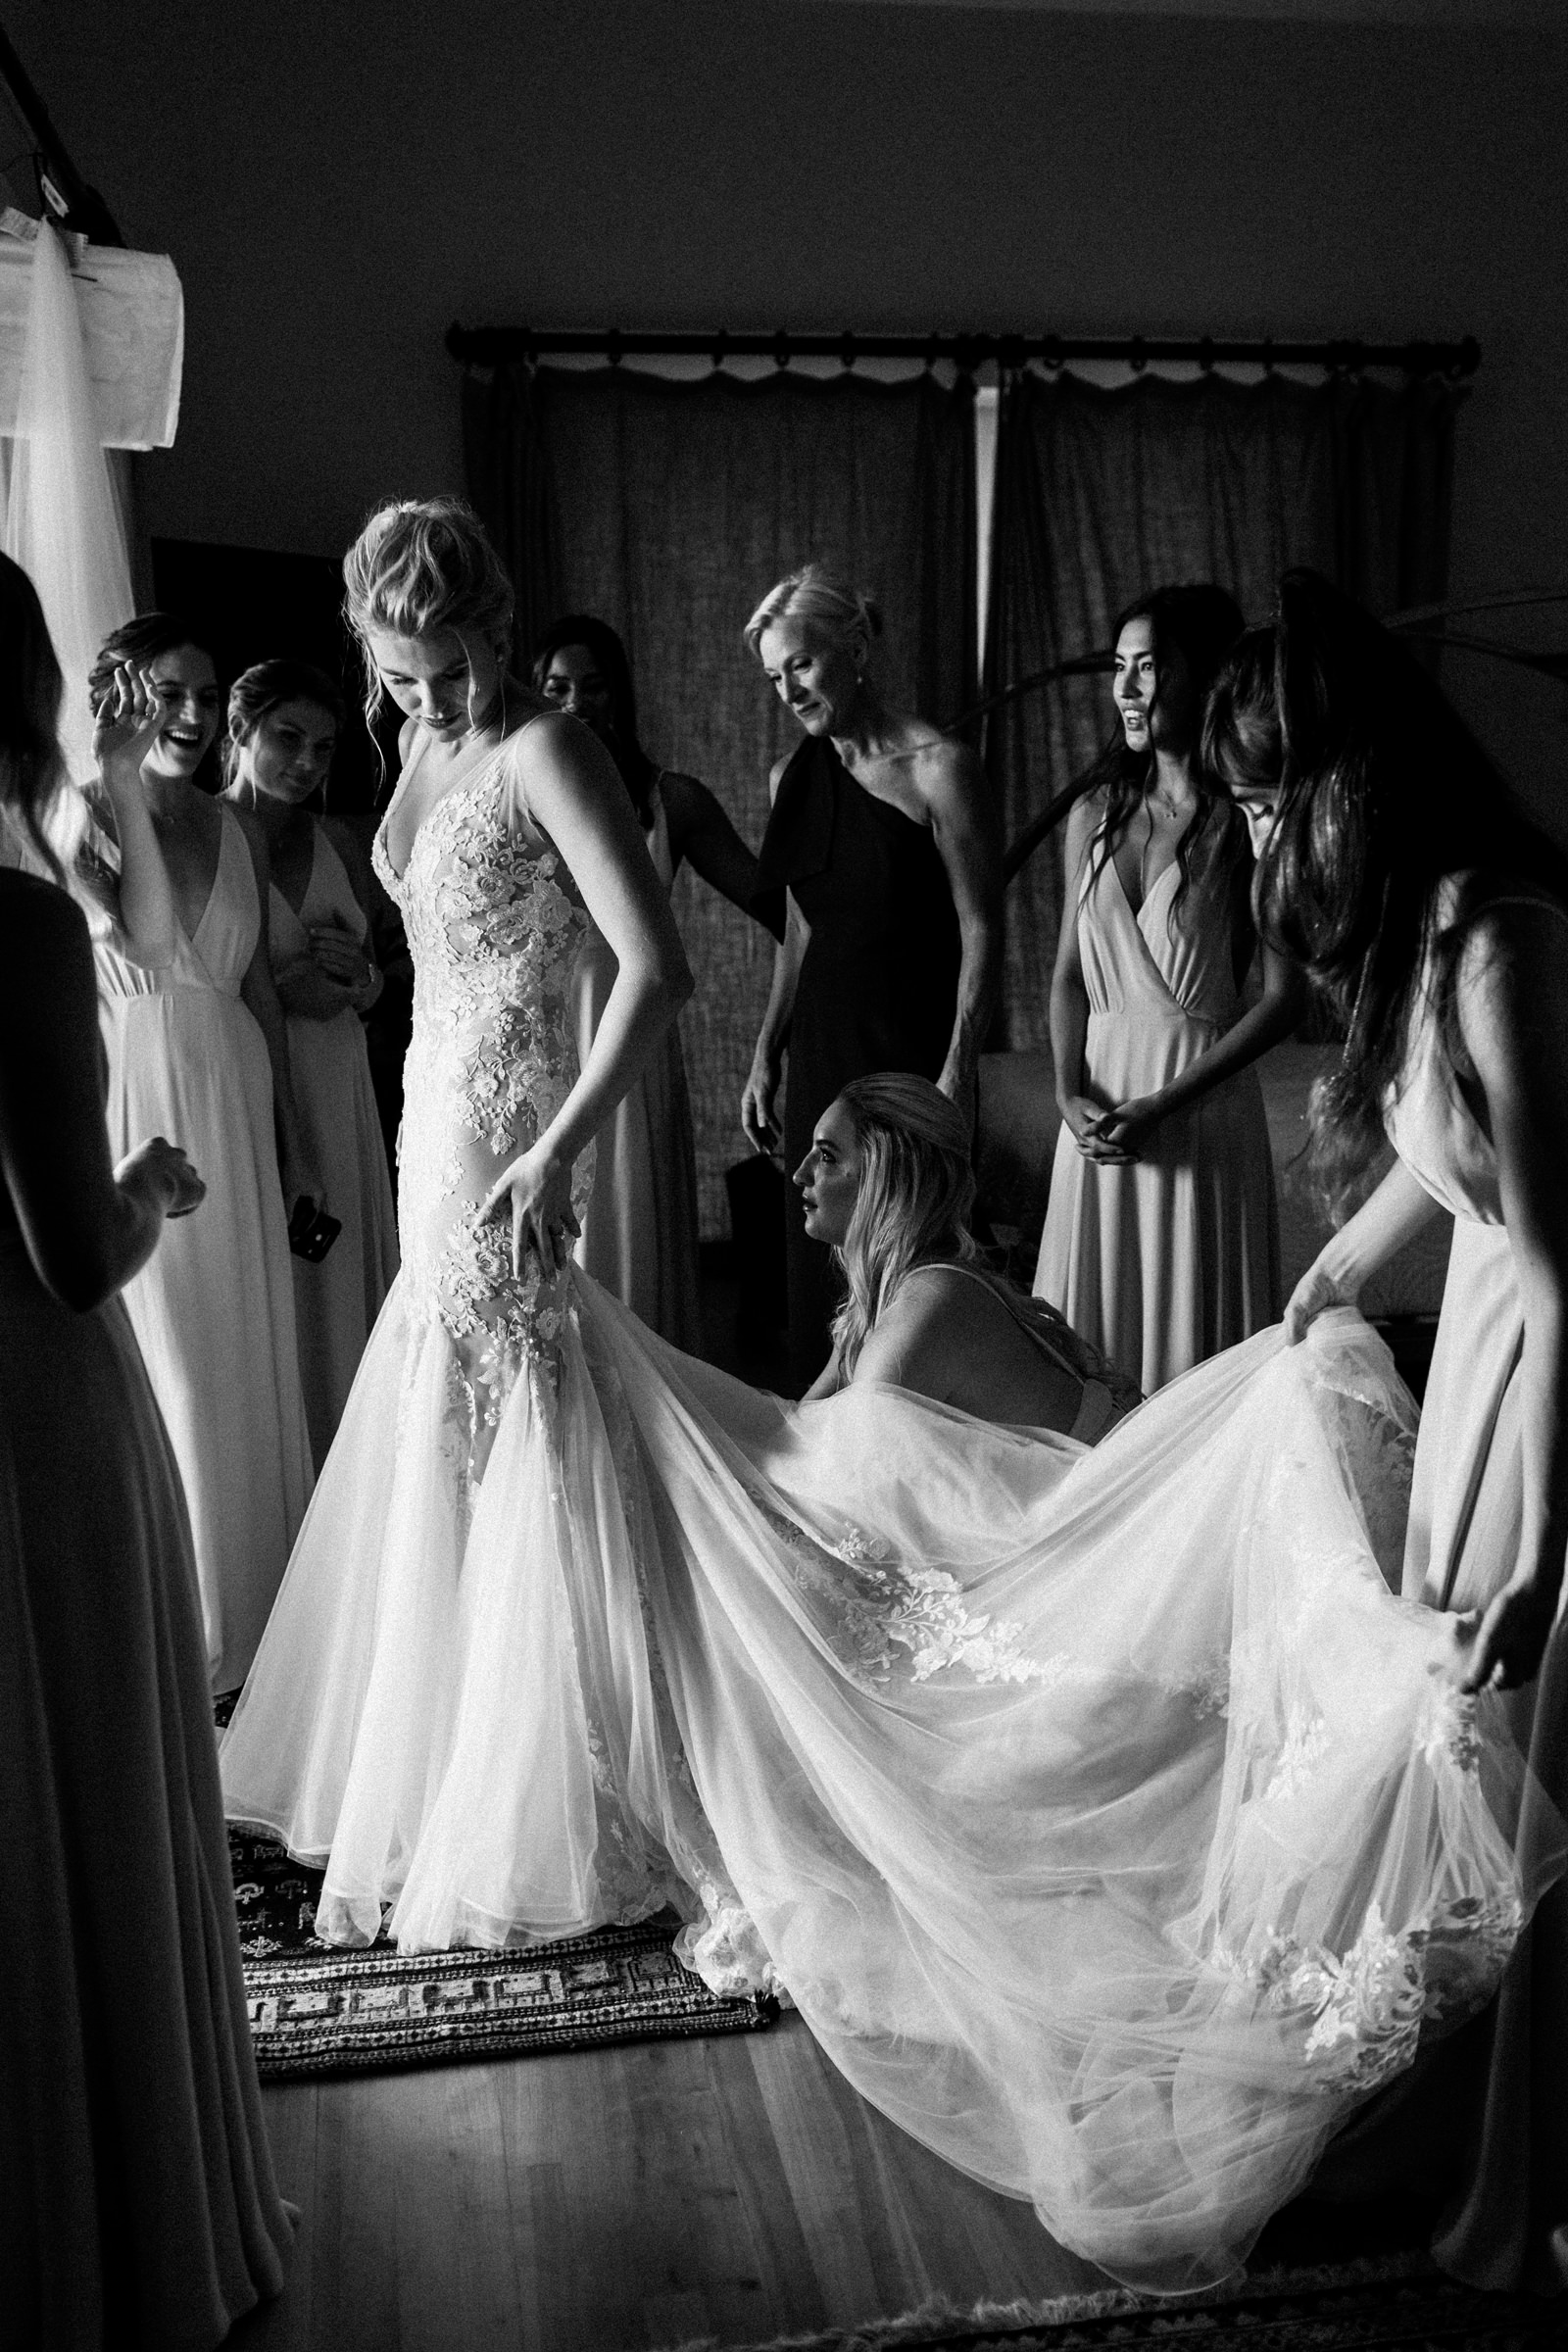 Glamorous bride finishing touches on gown - photo by Melia Lucida